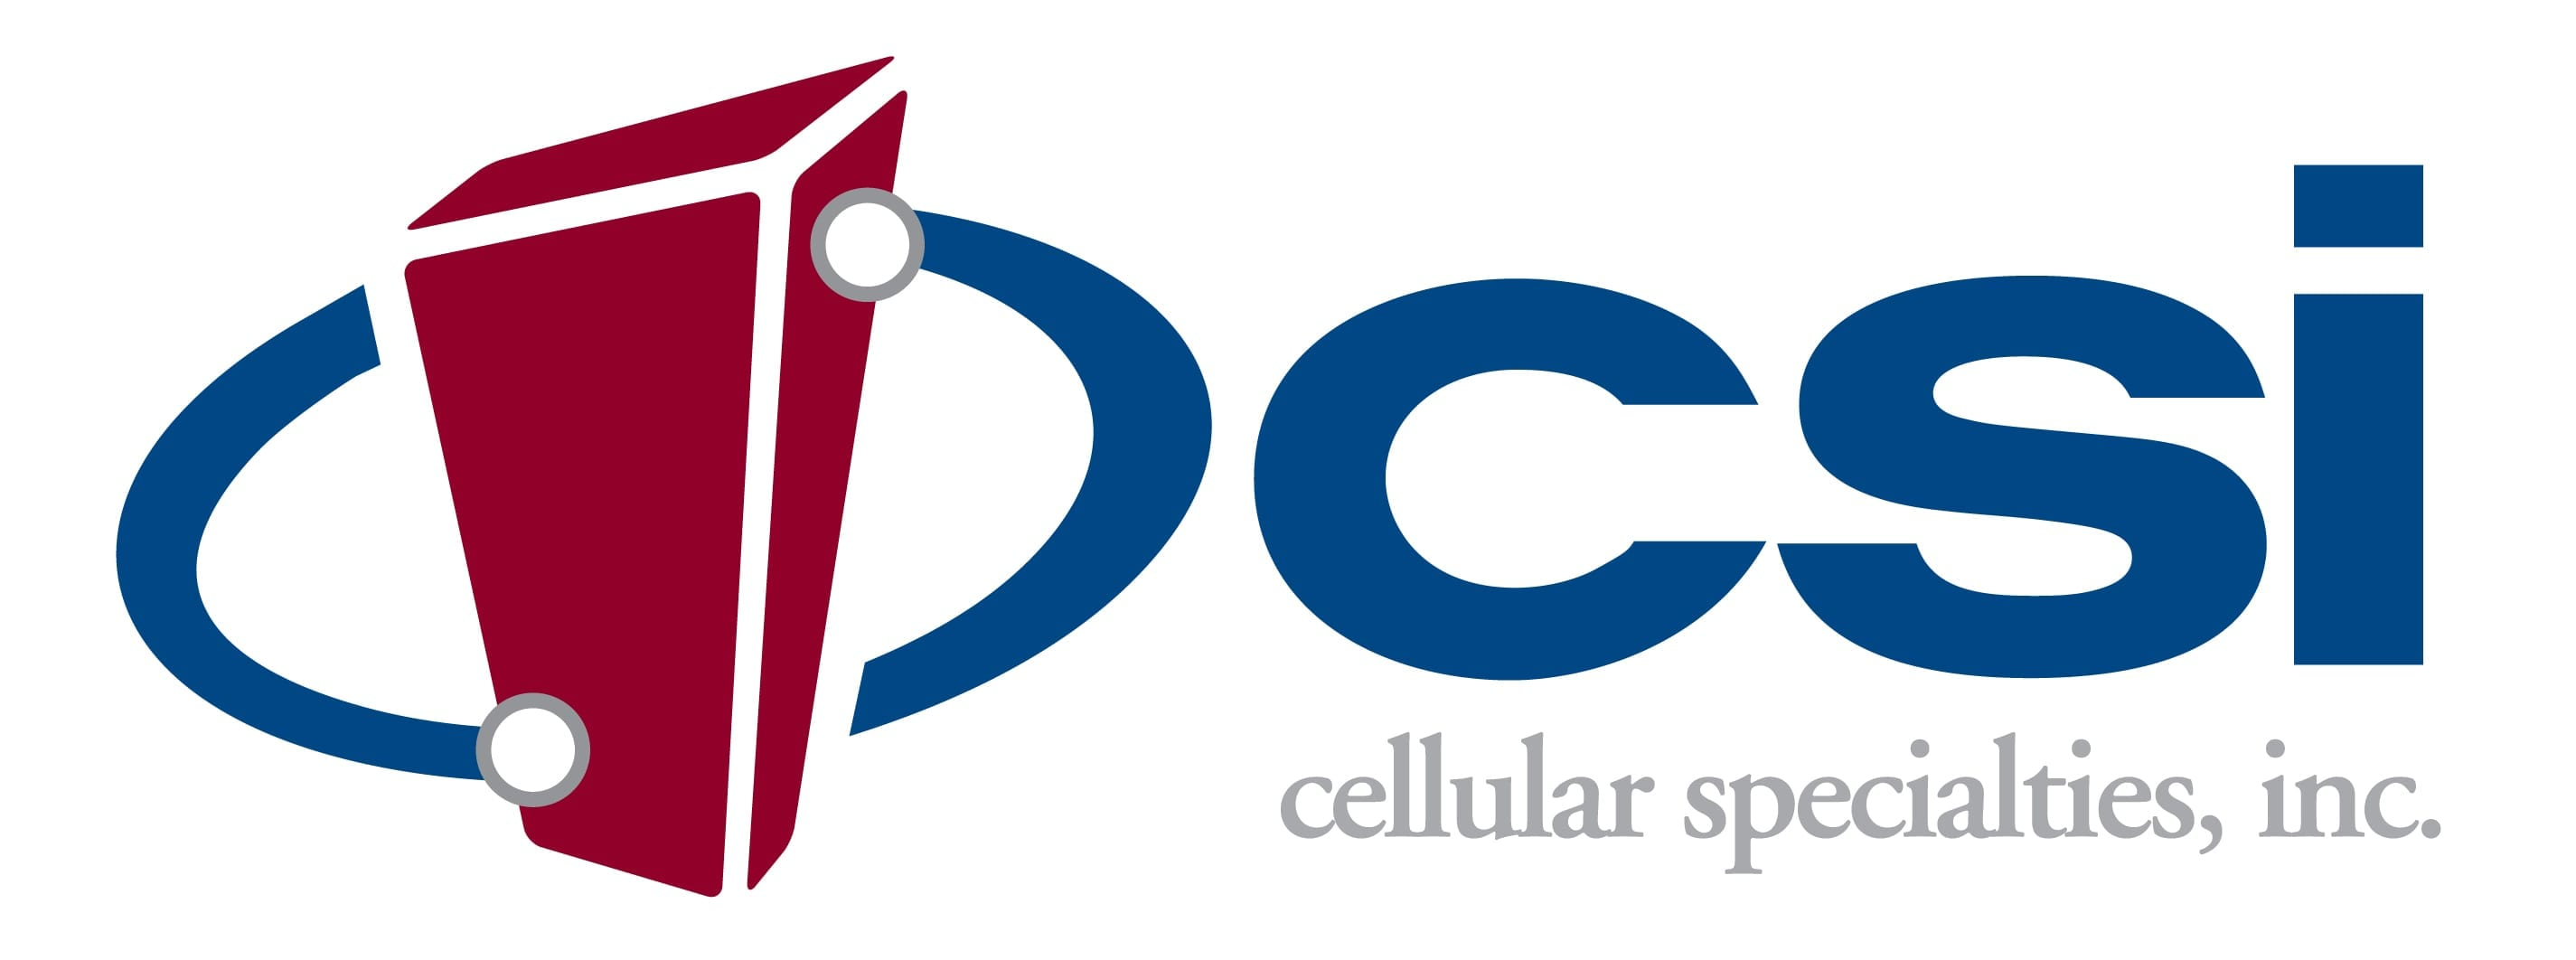 CSI Cellular Specialties, inc Partner